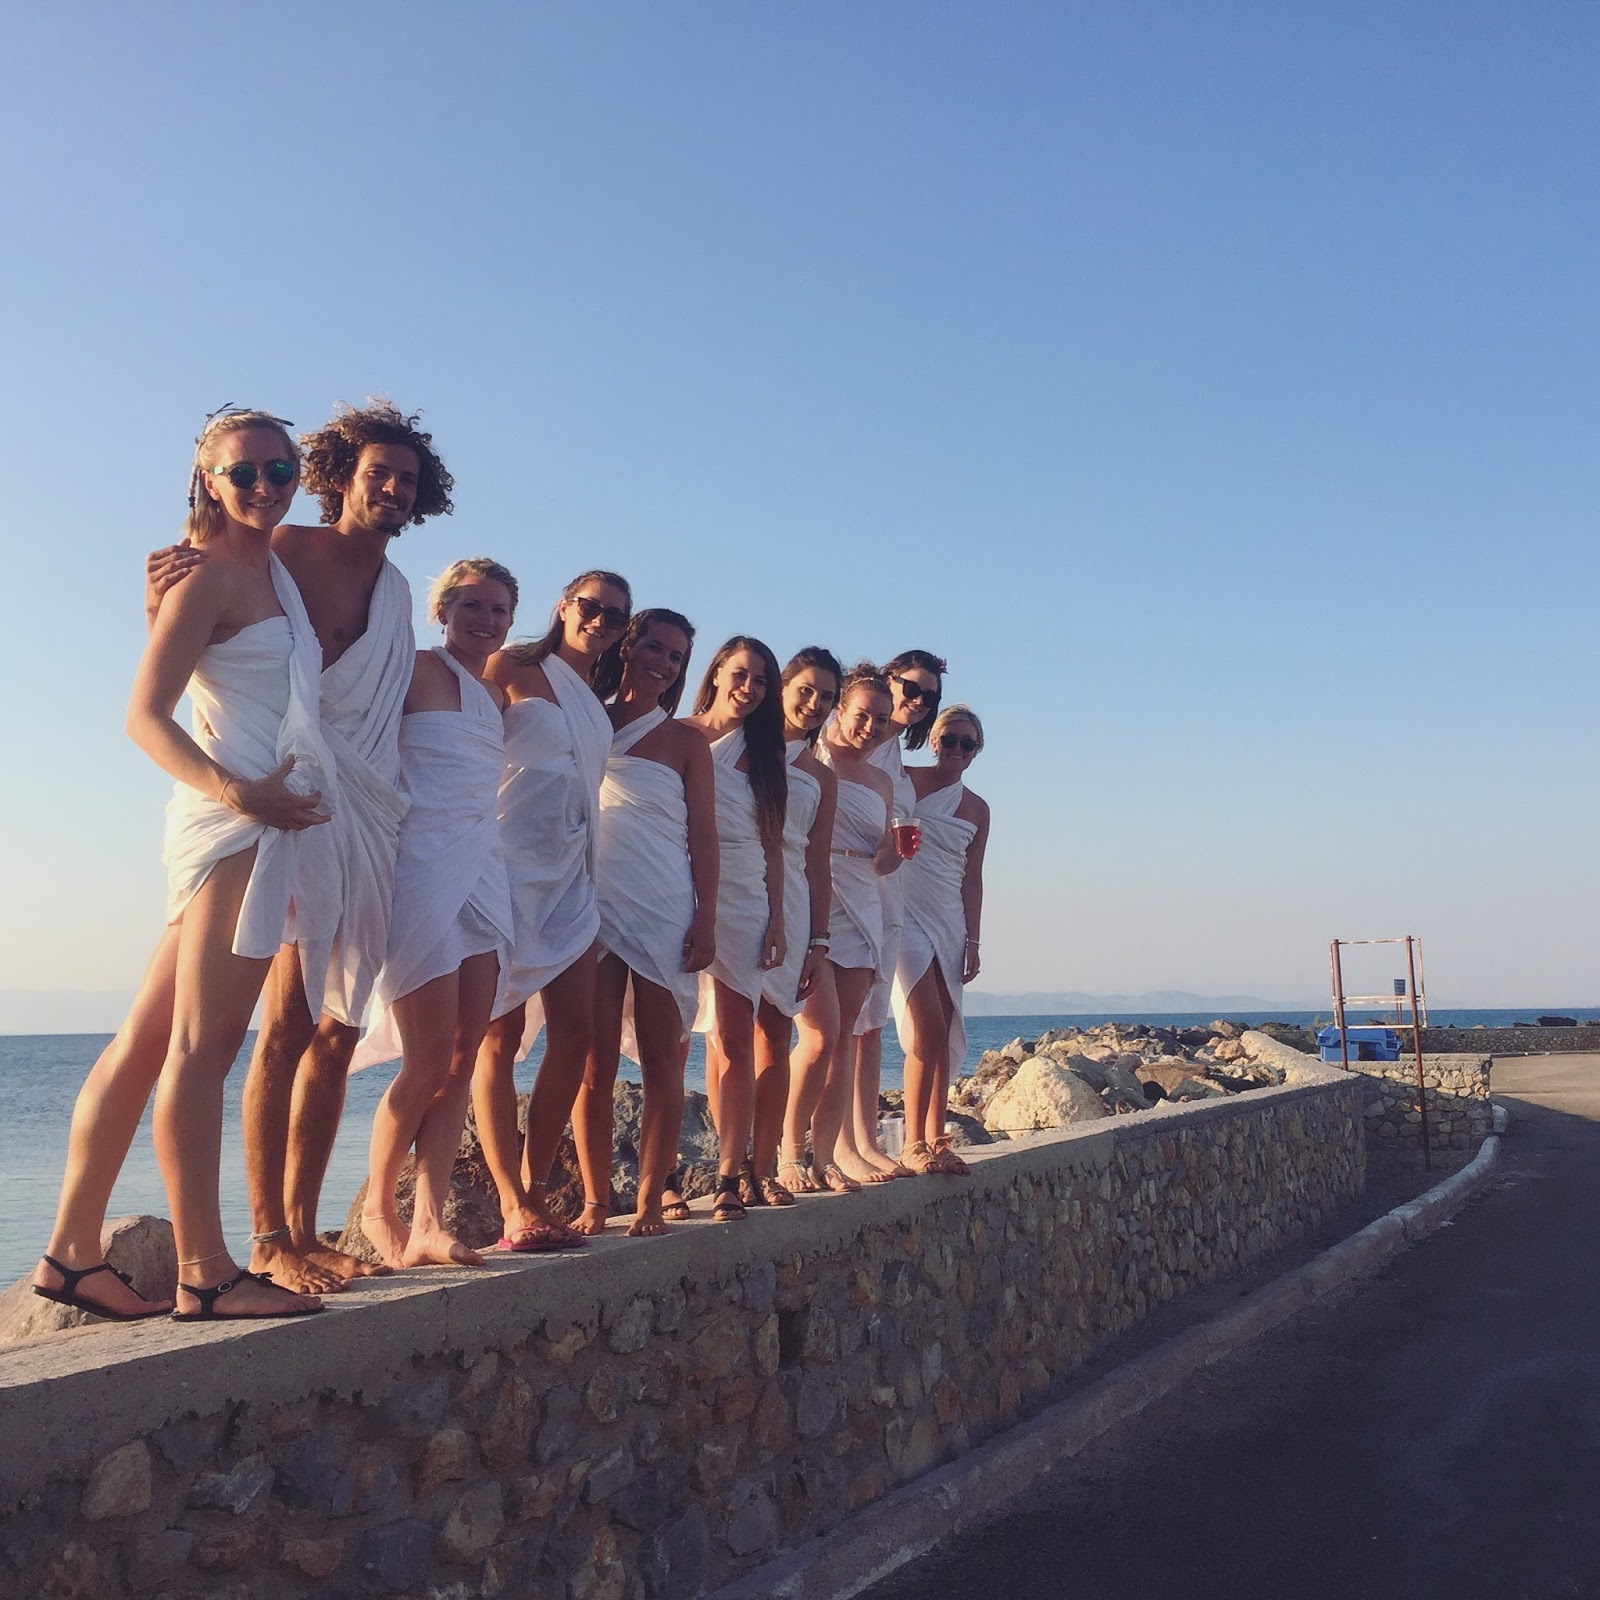 medsailors toga party, misdealers greece review, copper garden